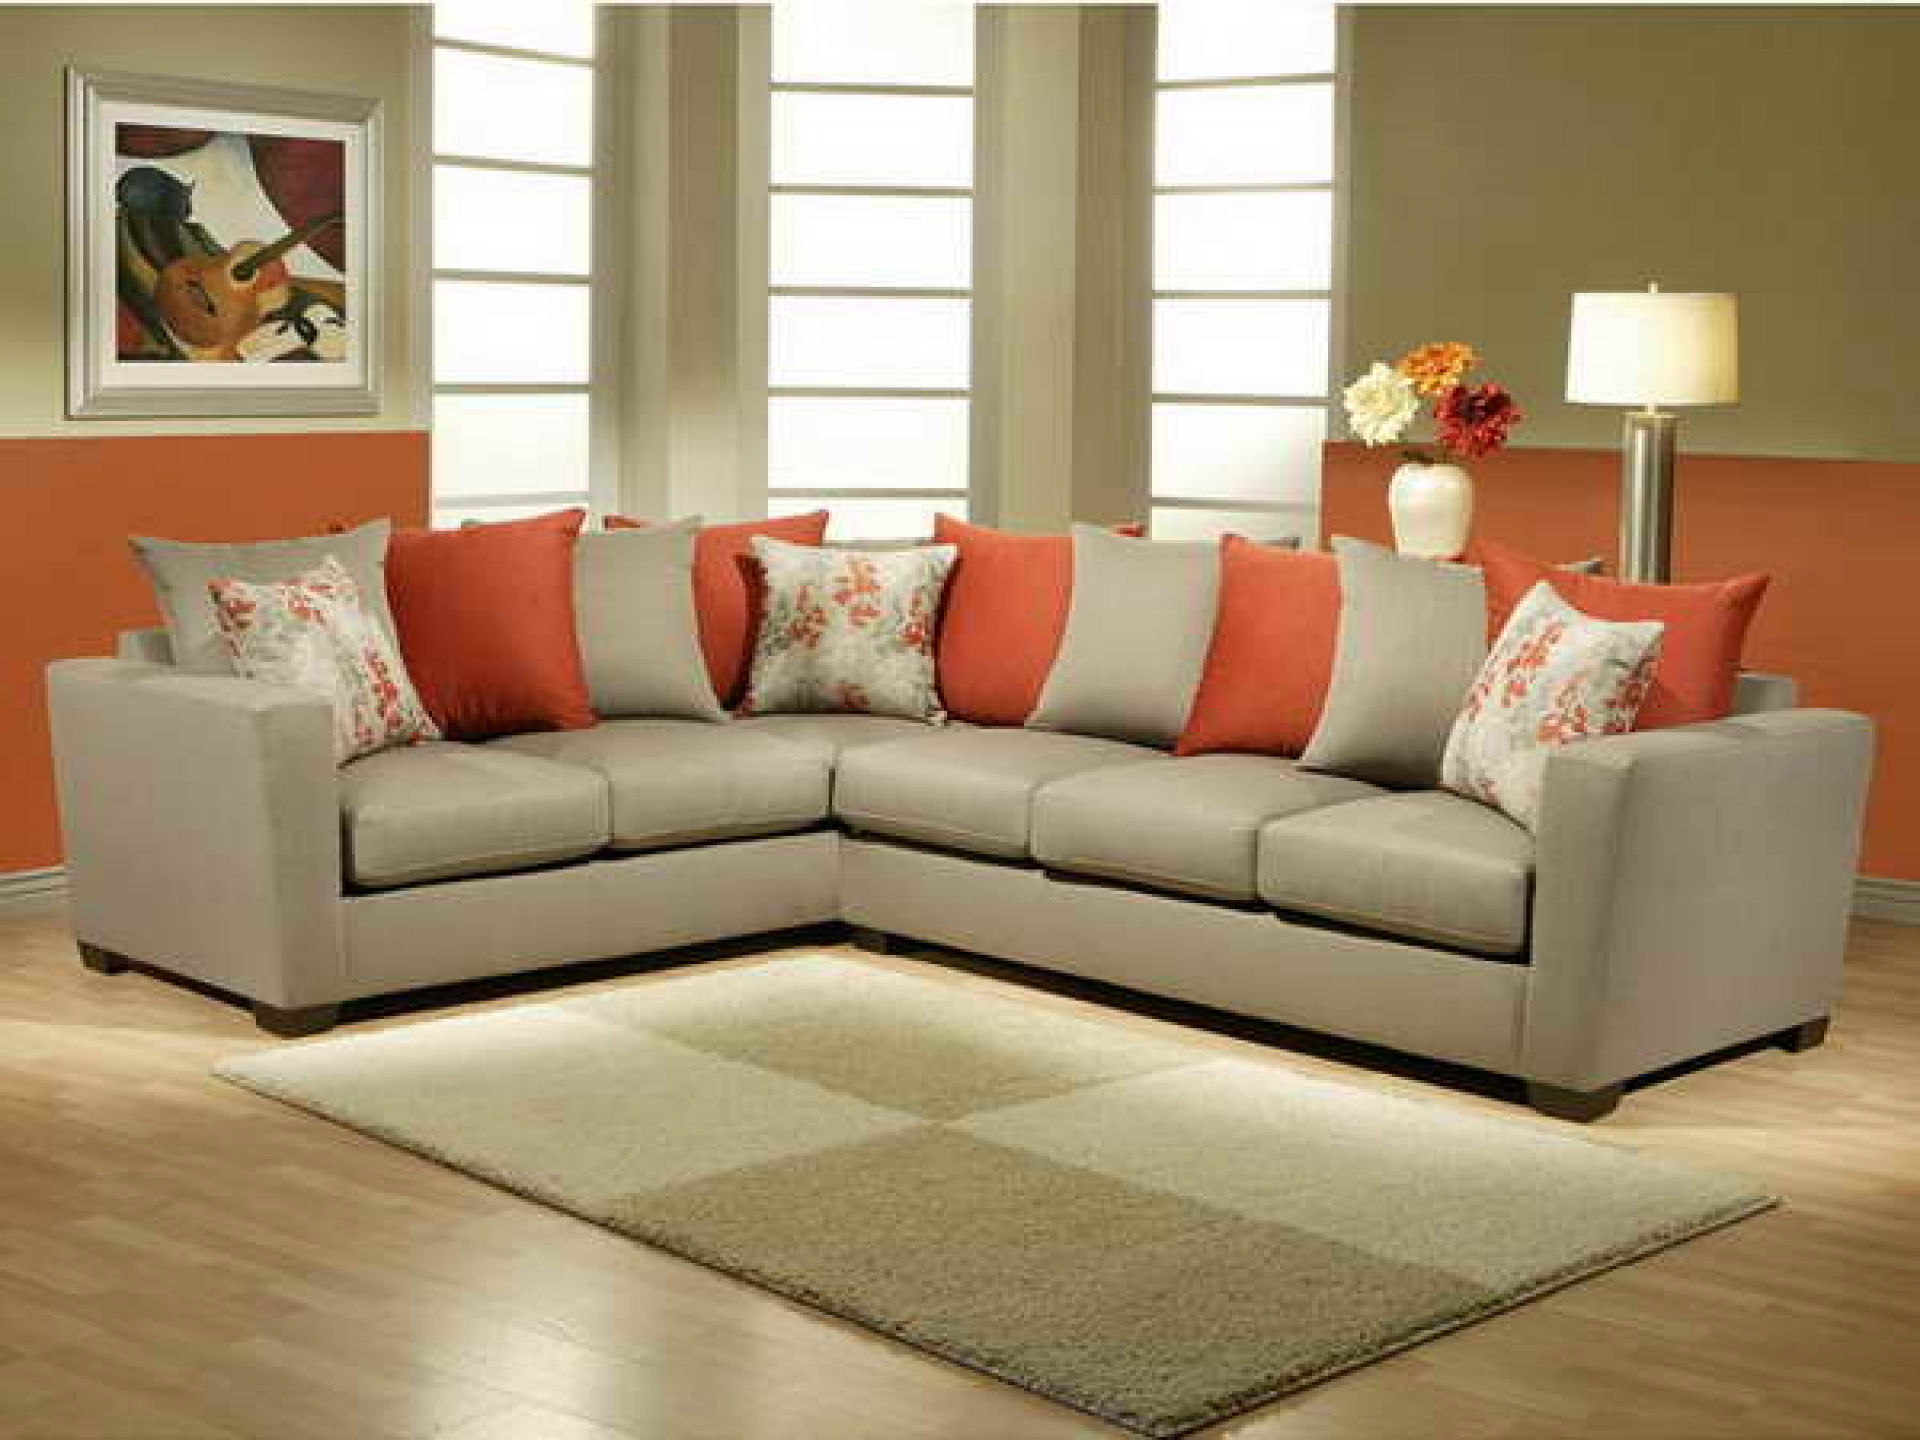 Check out our grey couch pillows selection for the very best in unique or custom, handmade pieces from our decorative pillows shops. The Most Comfortable Couch - HomesFeed